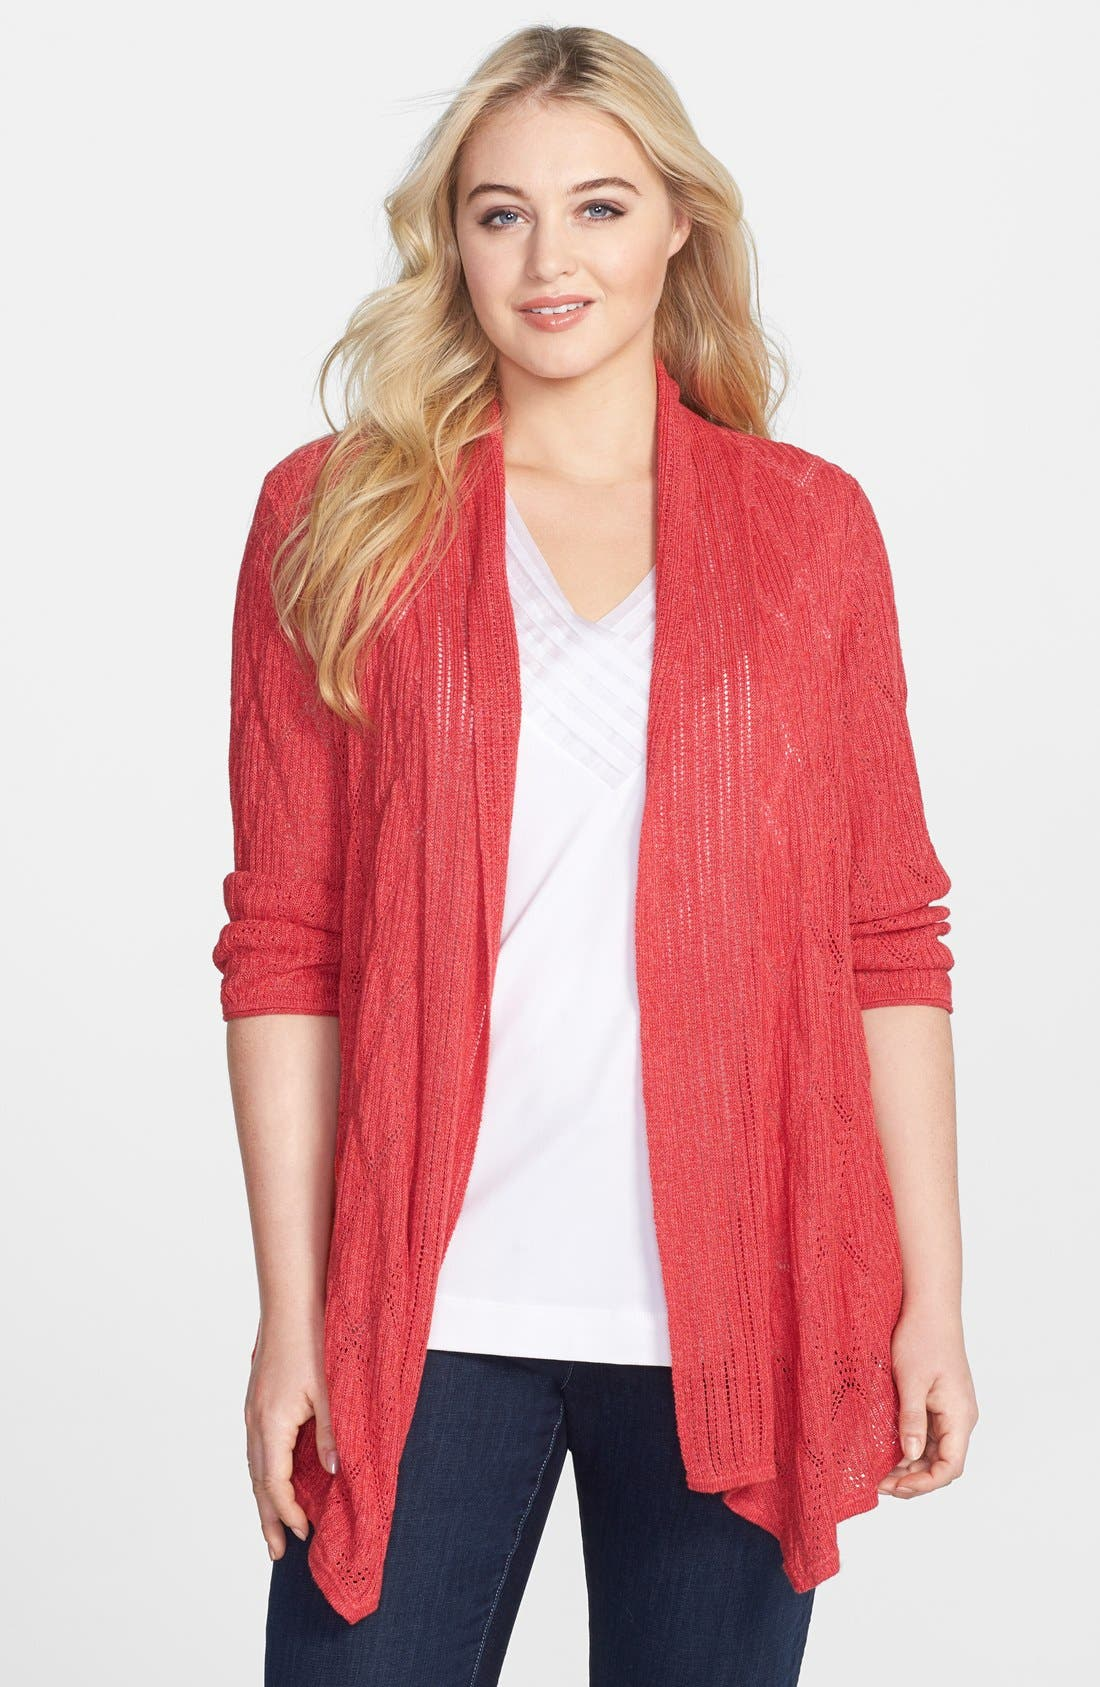 Alternate Image 1 Selected - NIC+ZOE 'Cascading Diamonds' Cardigan (Plus Size)